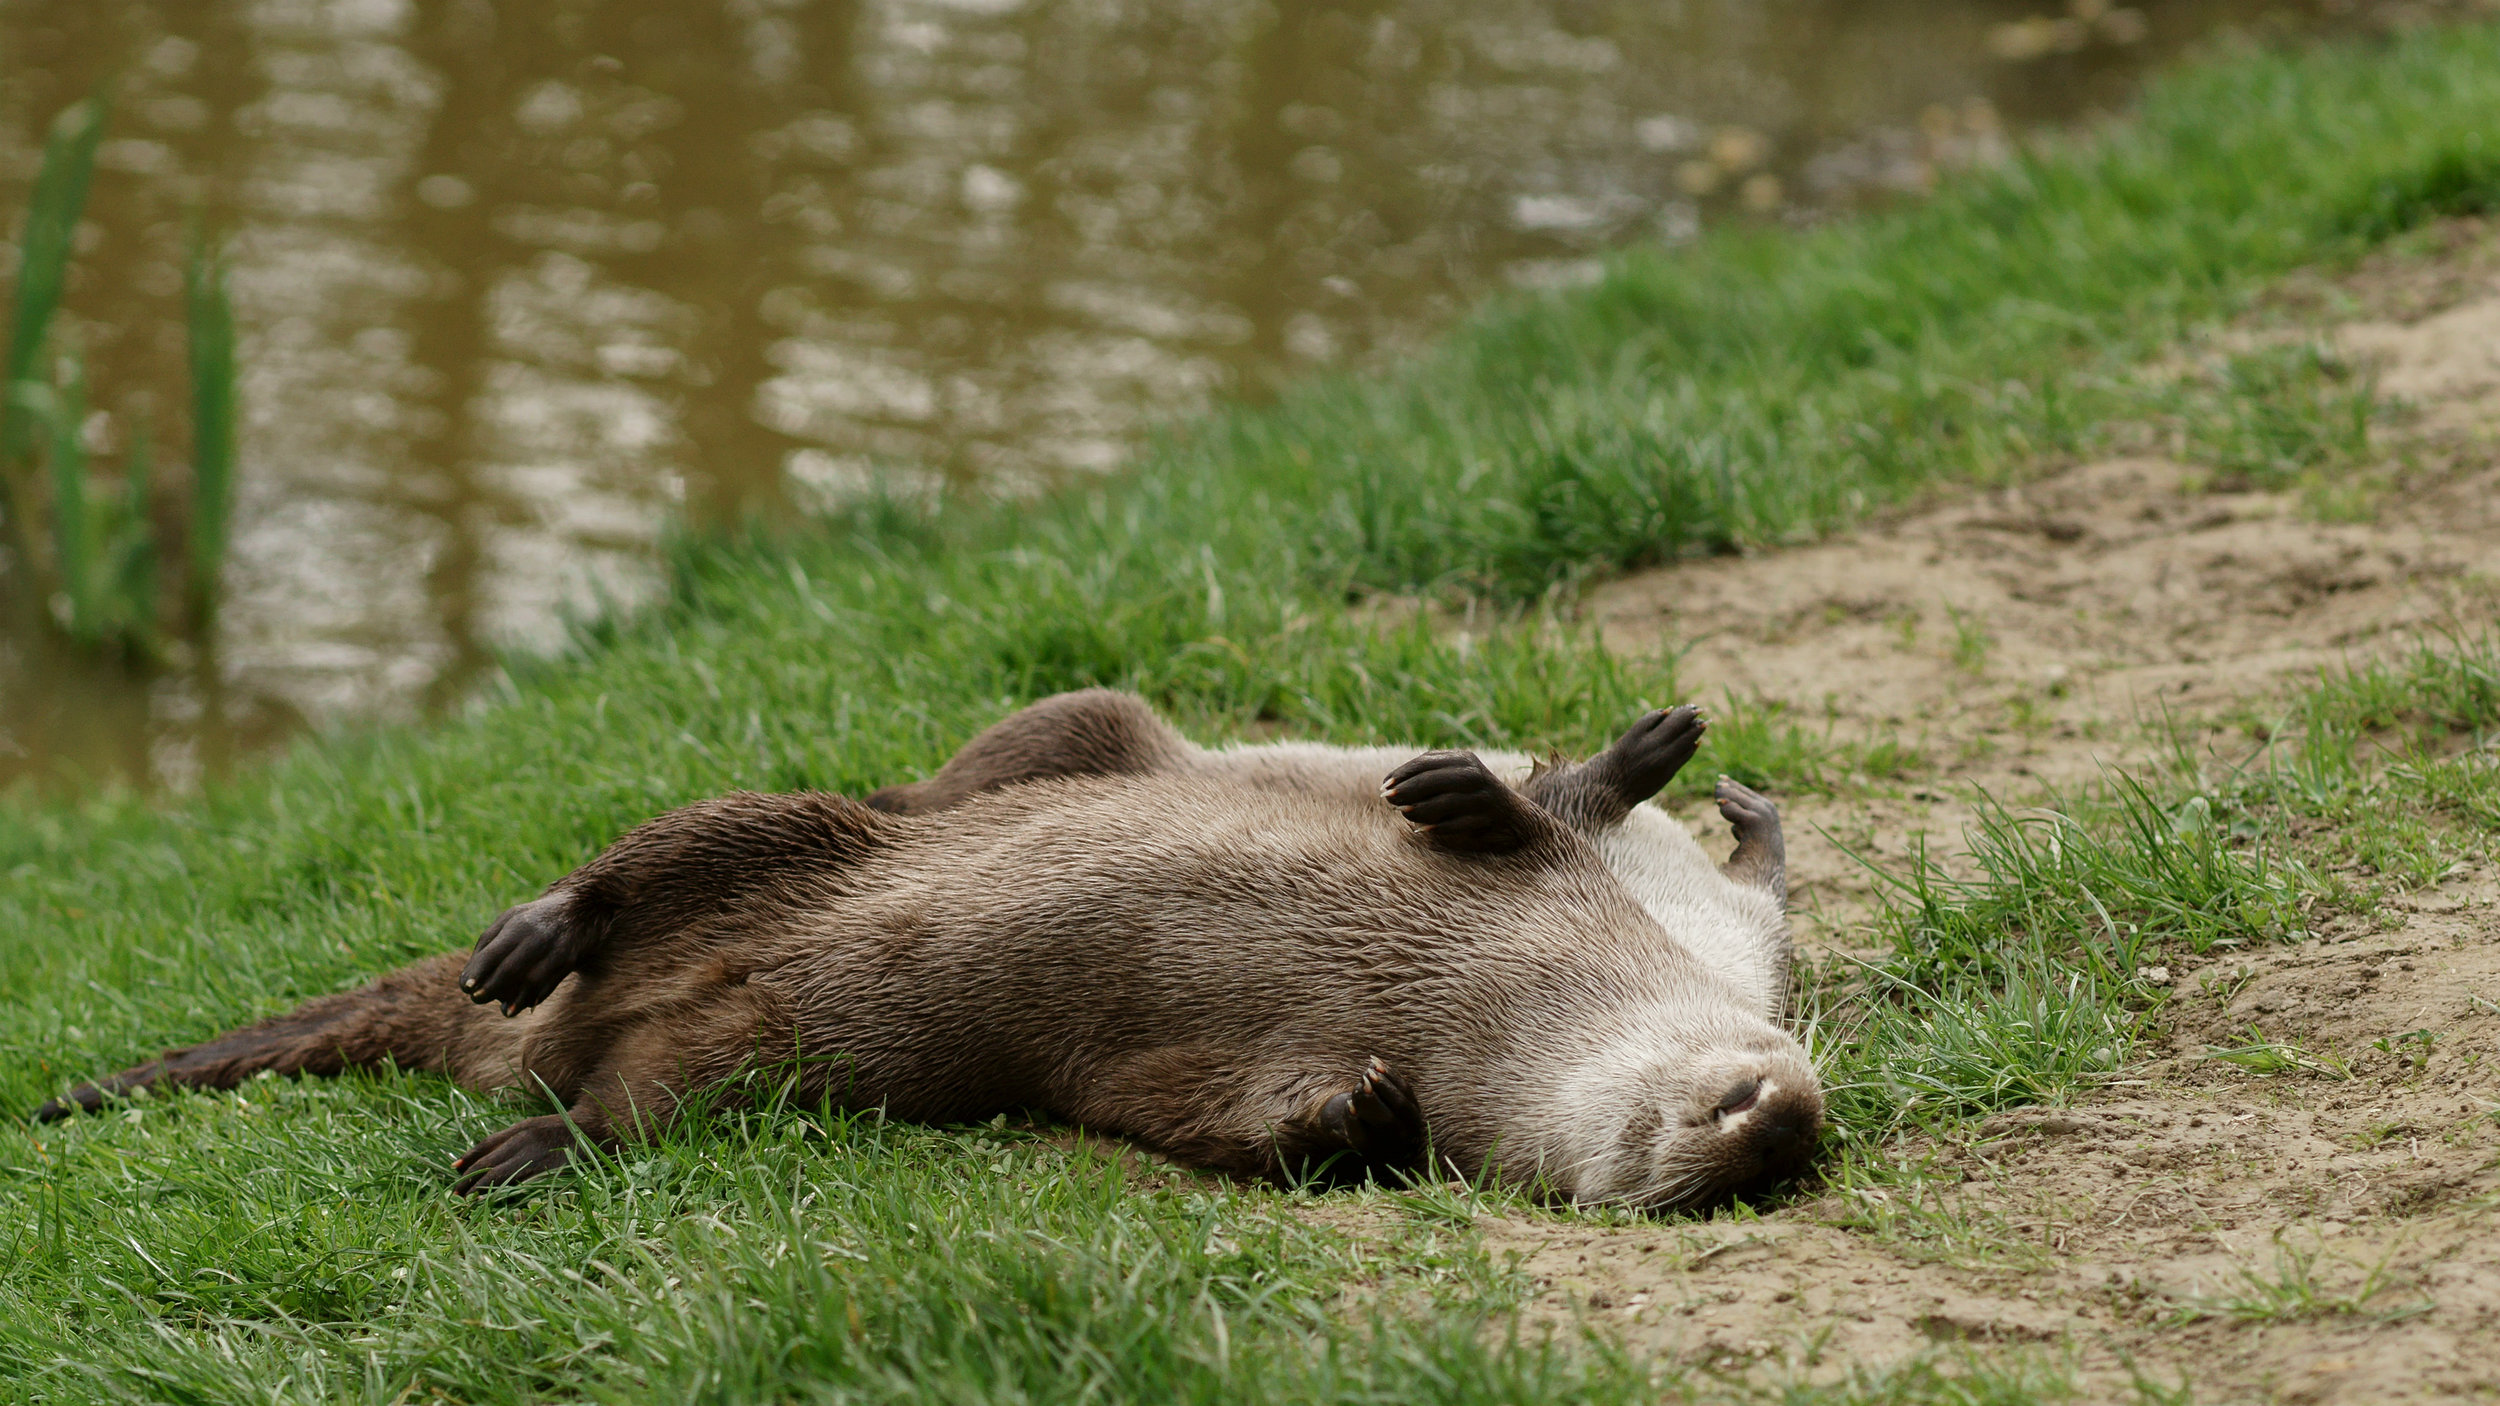 Otters Roll in the Grass